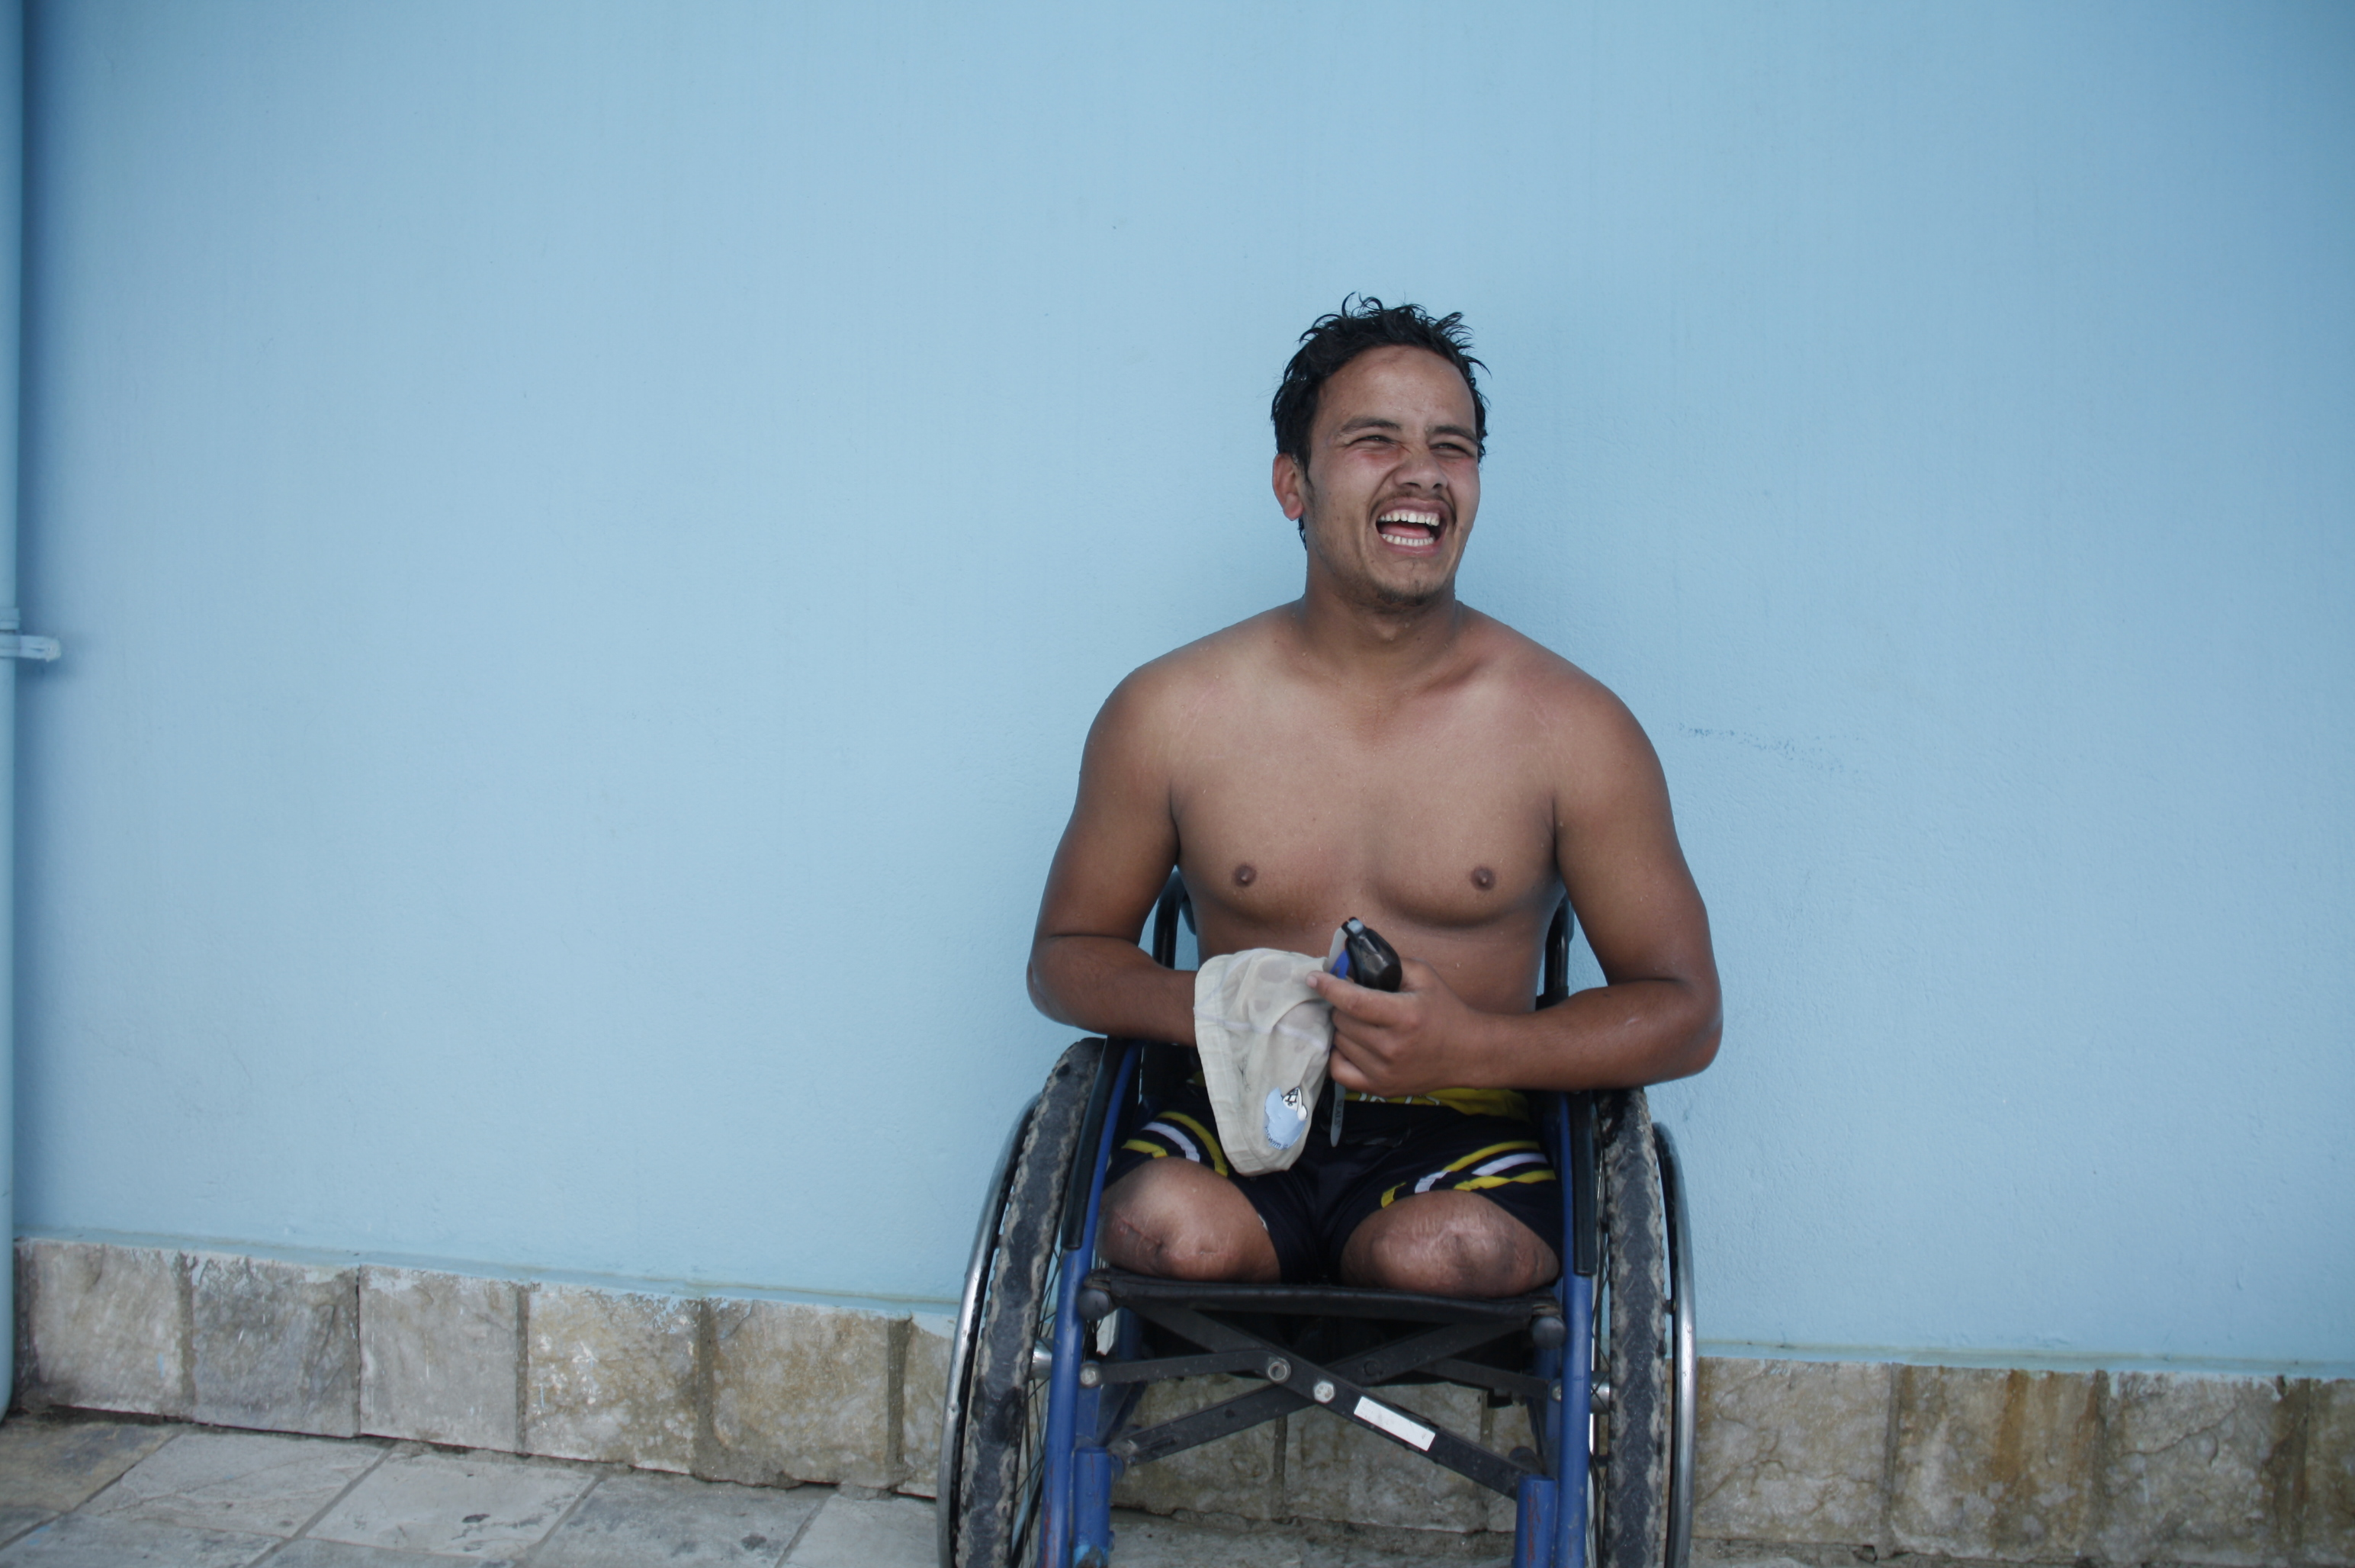 Ramesh is training in swimming for the Paralympic Games